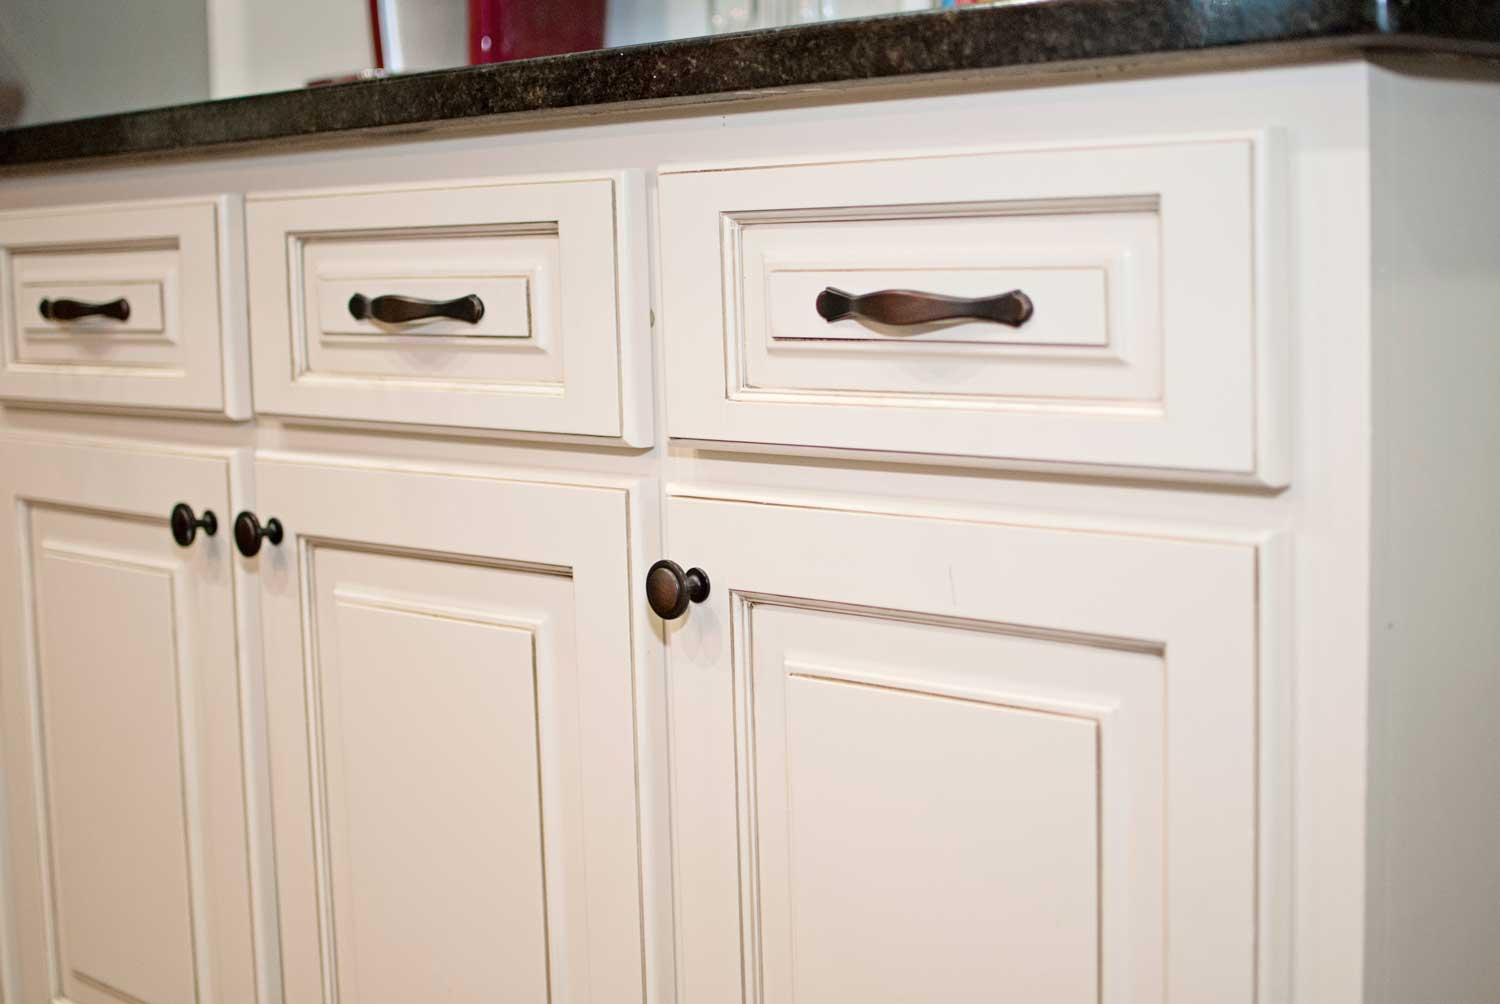 Refaced cabinet